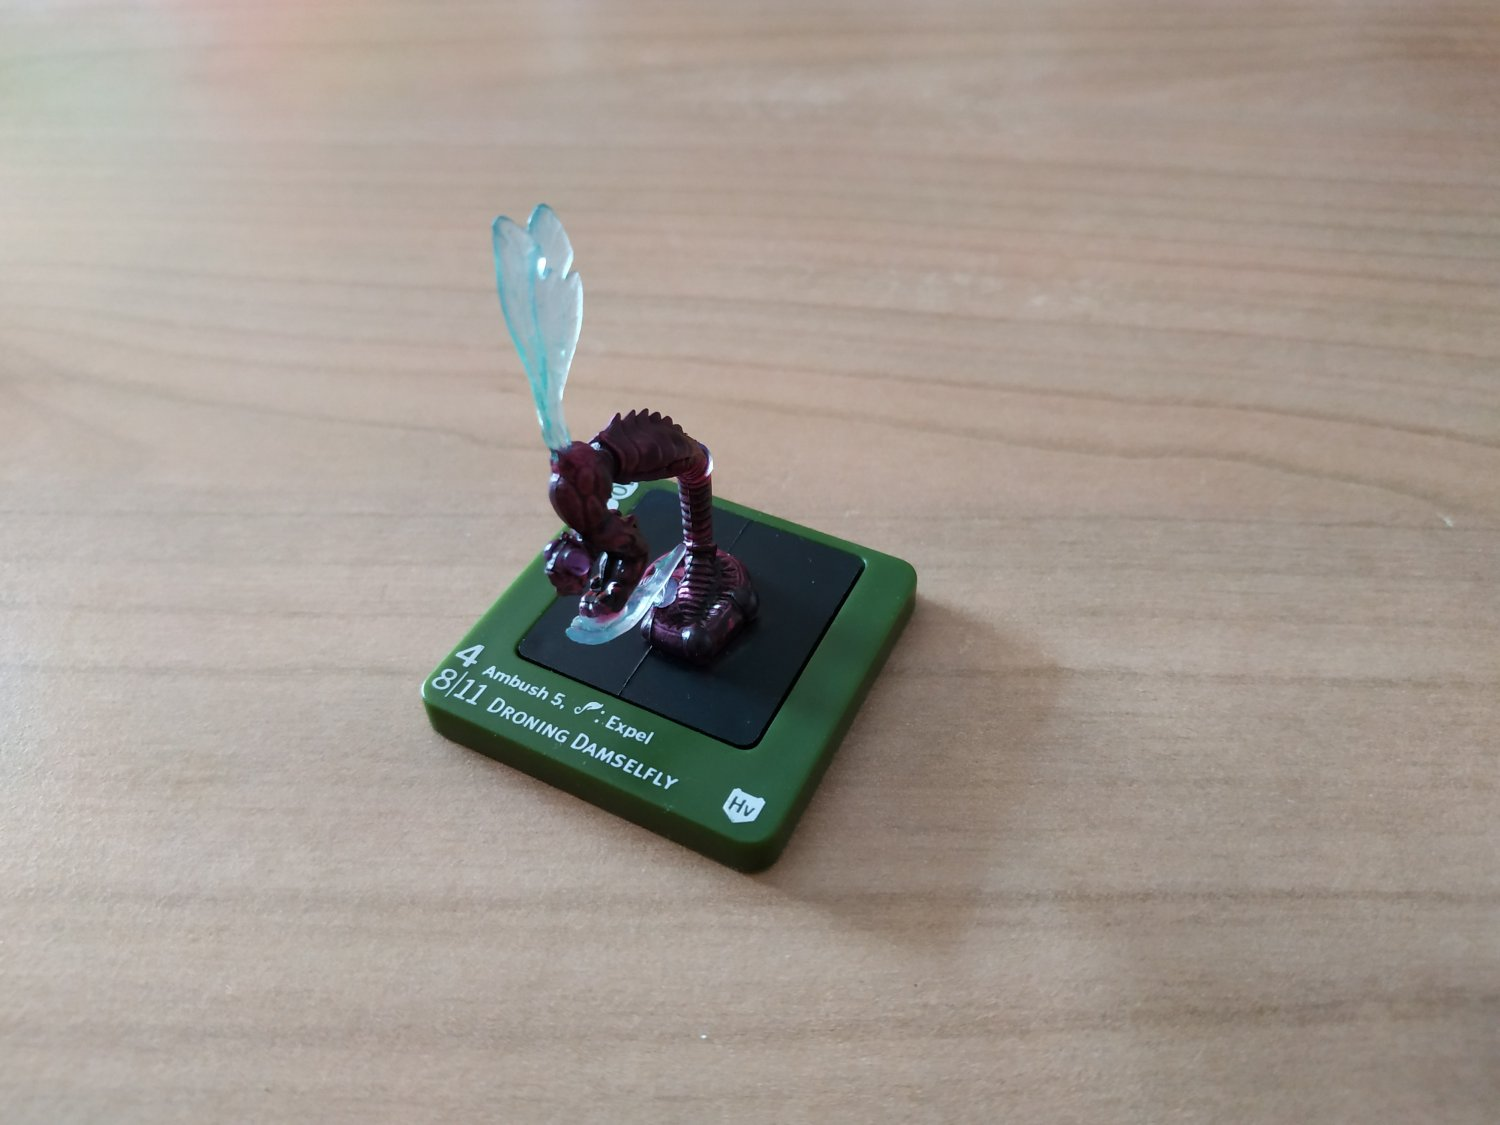 Dreamblade Miniatures, Droning Damselfly (Wizards of the coast, minis, collectible)